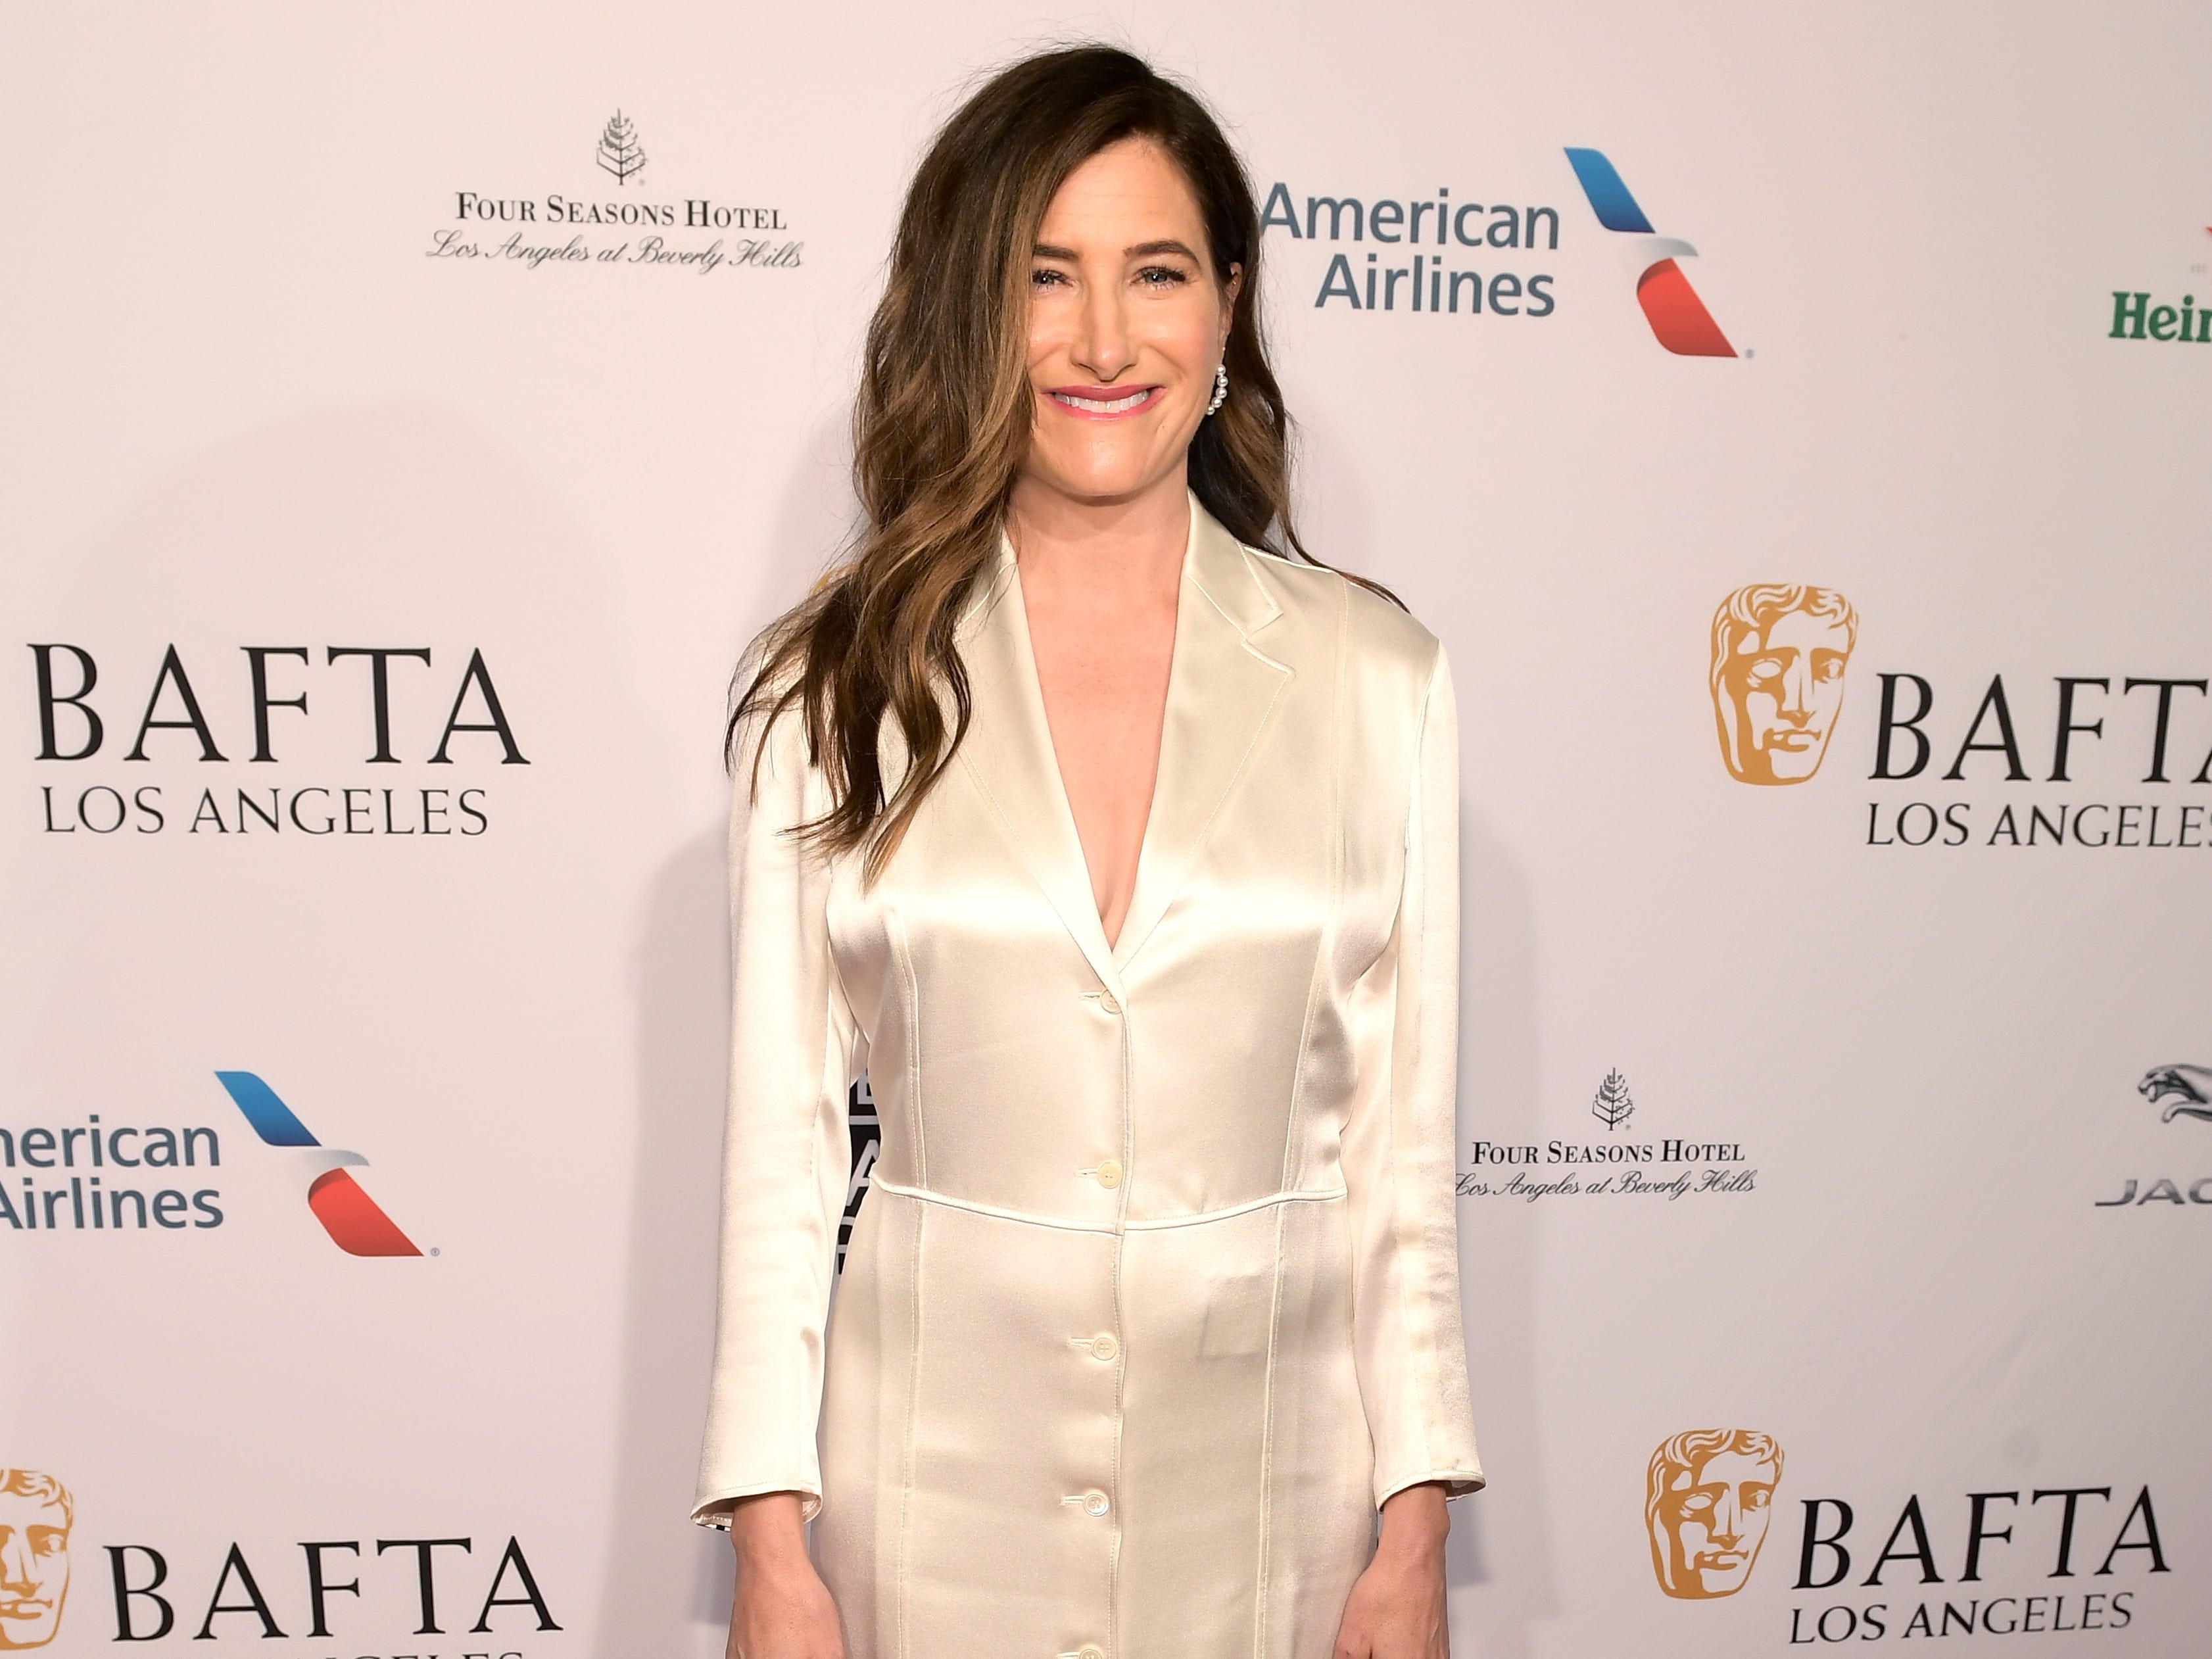 LOS ANGELES, CA - JANUARY 05:  Kathryn Hahn attends The BAFTA Los Angeles Tea Party at Four Seasons Hotel Los Angeles at Beverly Hills on January 5, 2019 in Los Angeles, California.  (Photo by Matt Winkelmeyer/Getty Images) ORG XMIT: 775256316 ORIG FILE ID: 1077925248